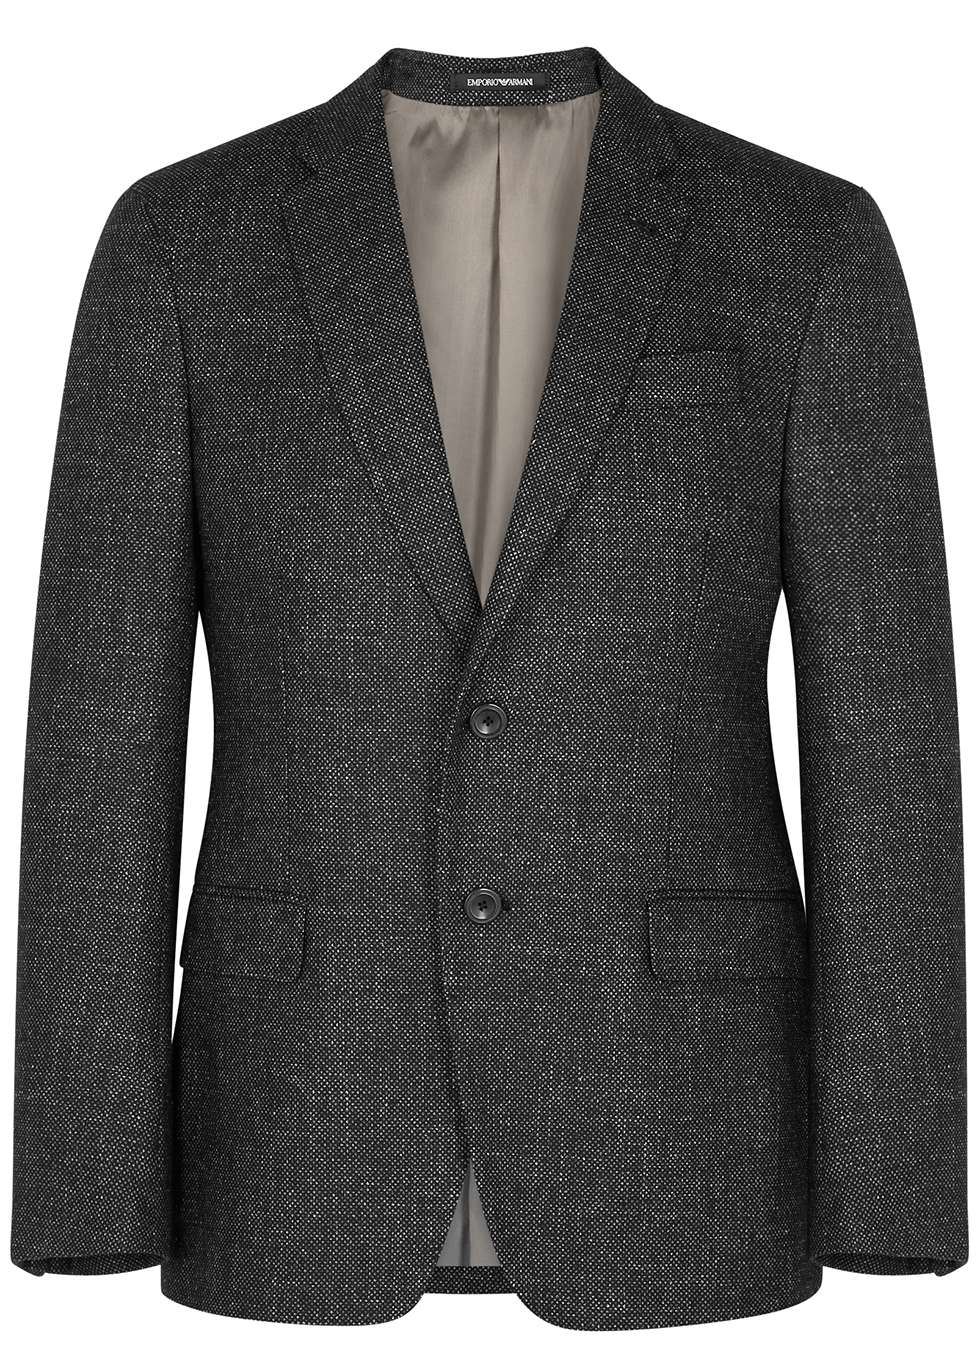 Charcoal textured-weave blazer